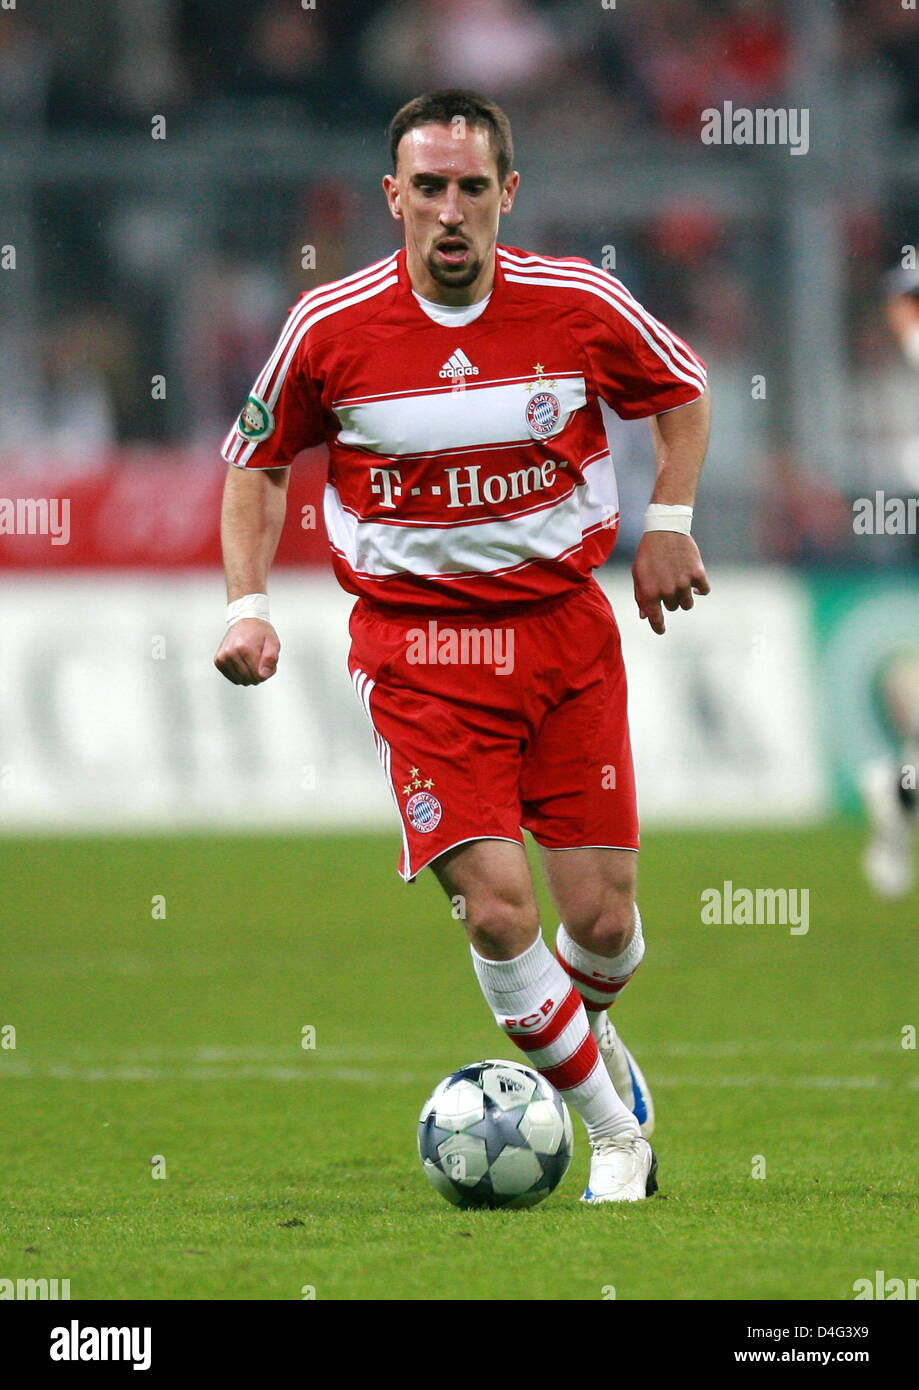 Fc bayern munich player franck ribery is shown in action during the fc bayern munich player franck ribery is shown in action during the german football federations dfb cup vs 1 fc nuremberg at allianz arena in munich voltagebd Images